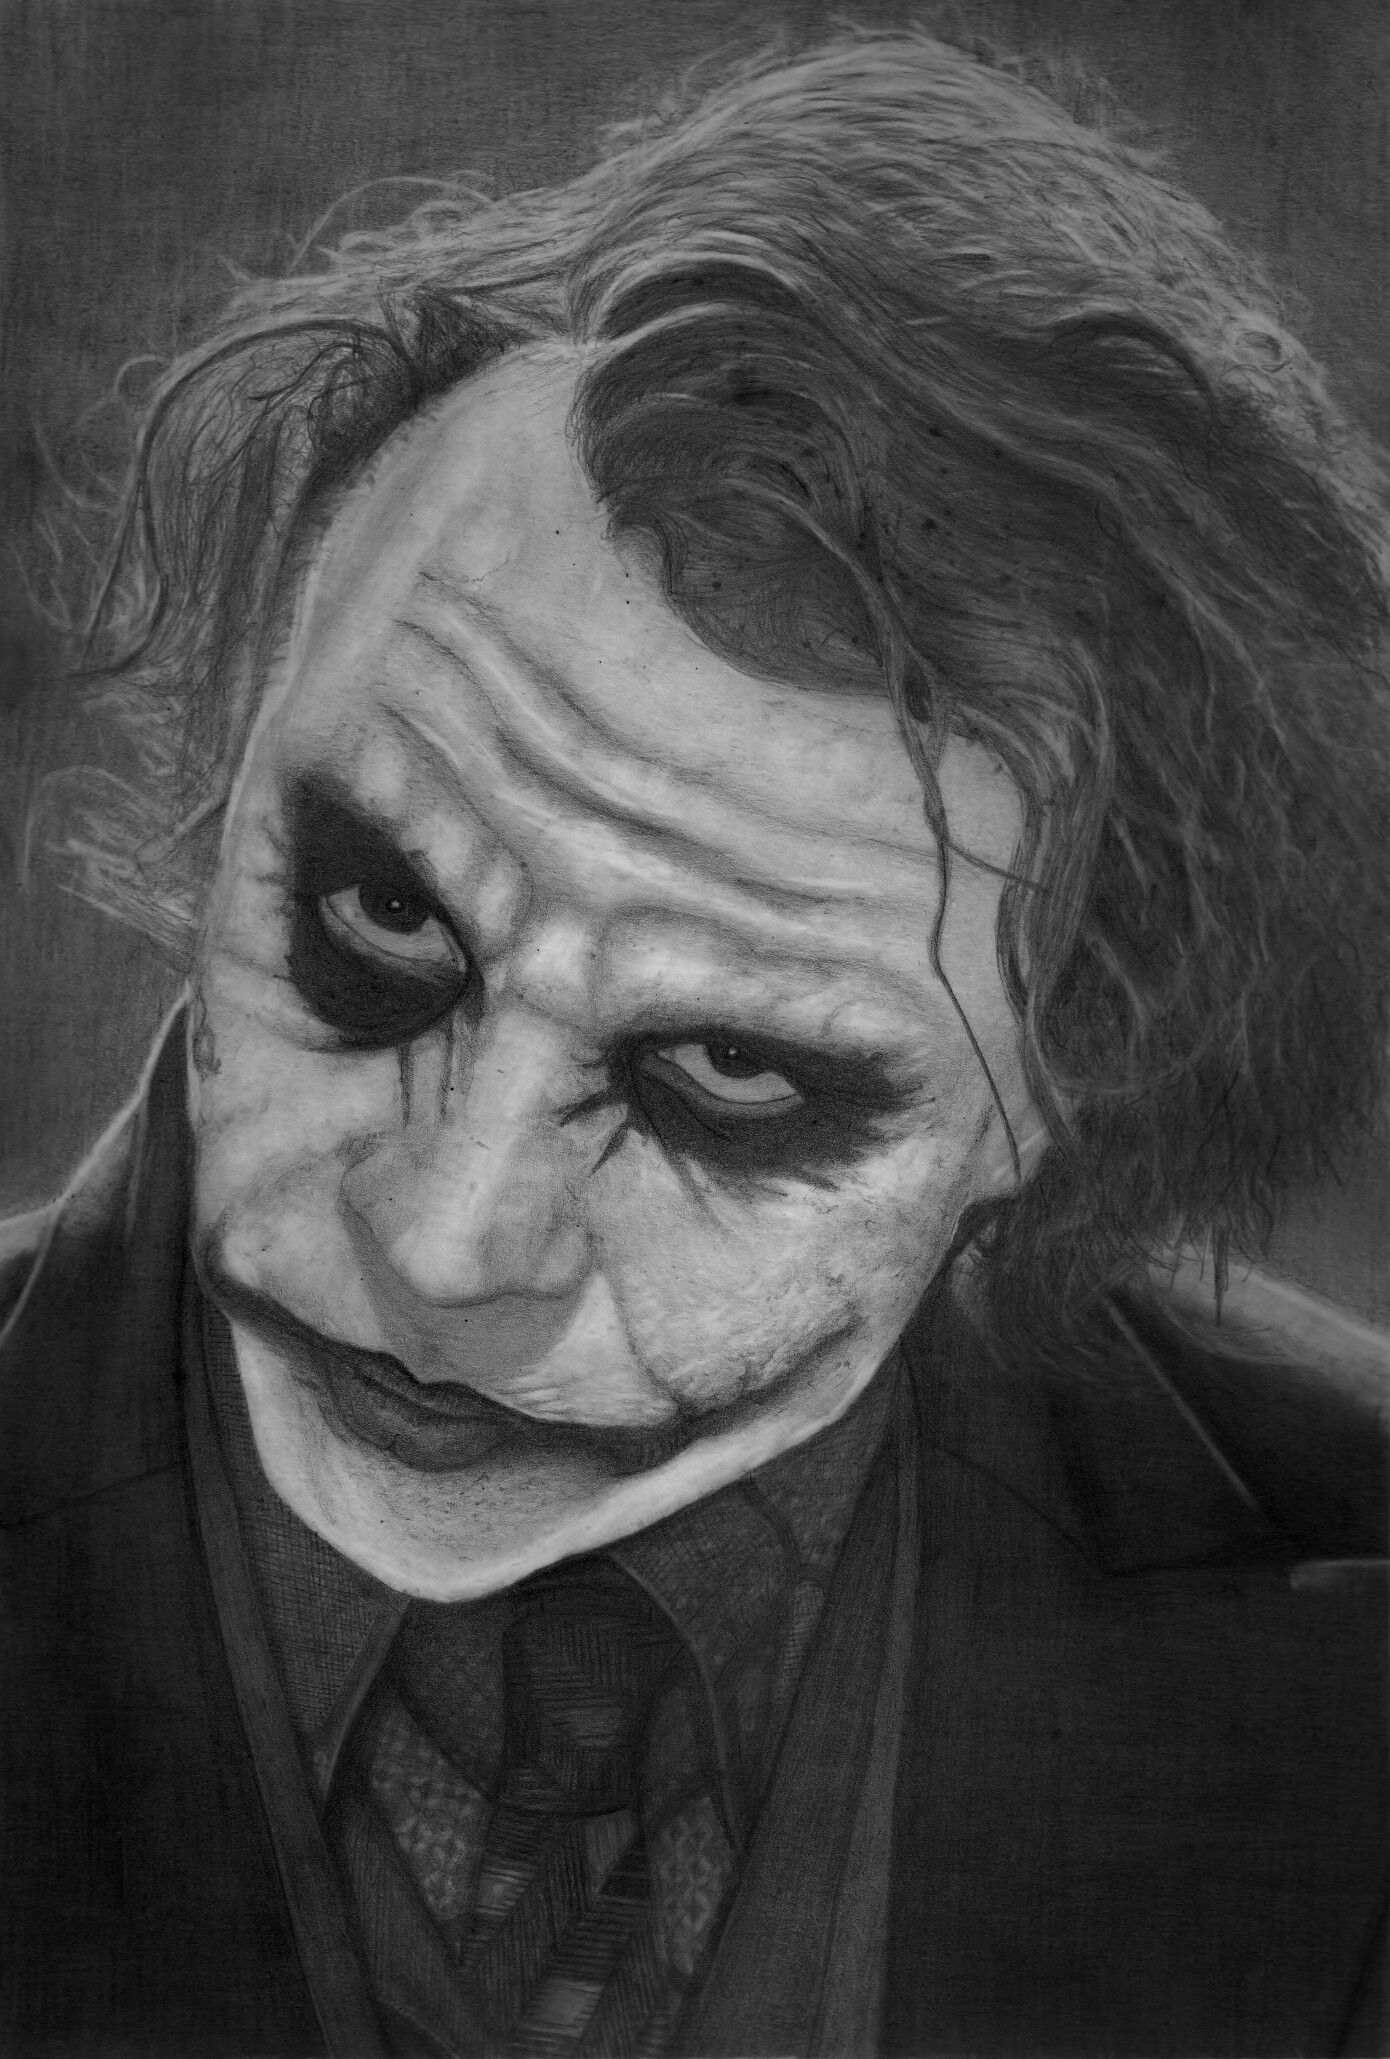 My Pencil Drawing Of Heath Ledger As The Joker From The Dark Knight | Heath Ledger | Pinterest ...